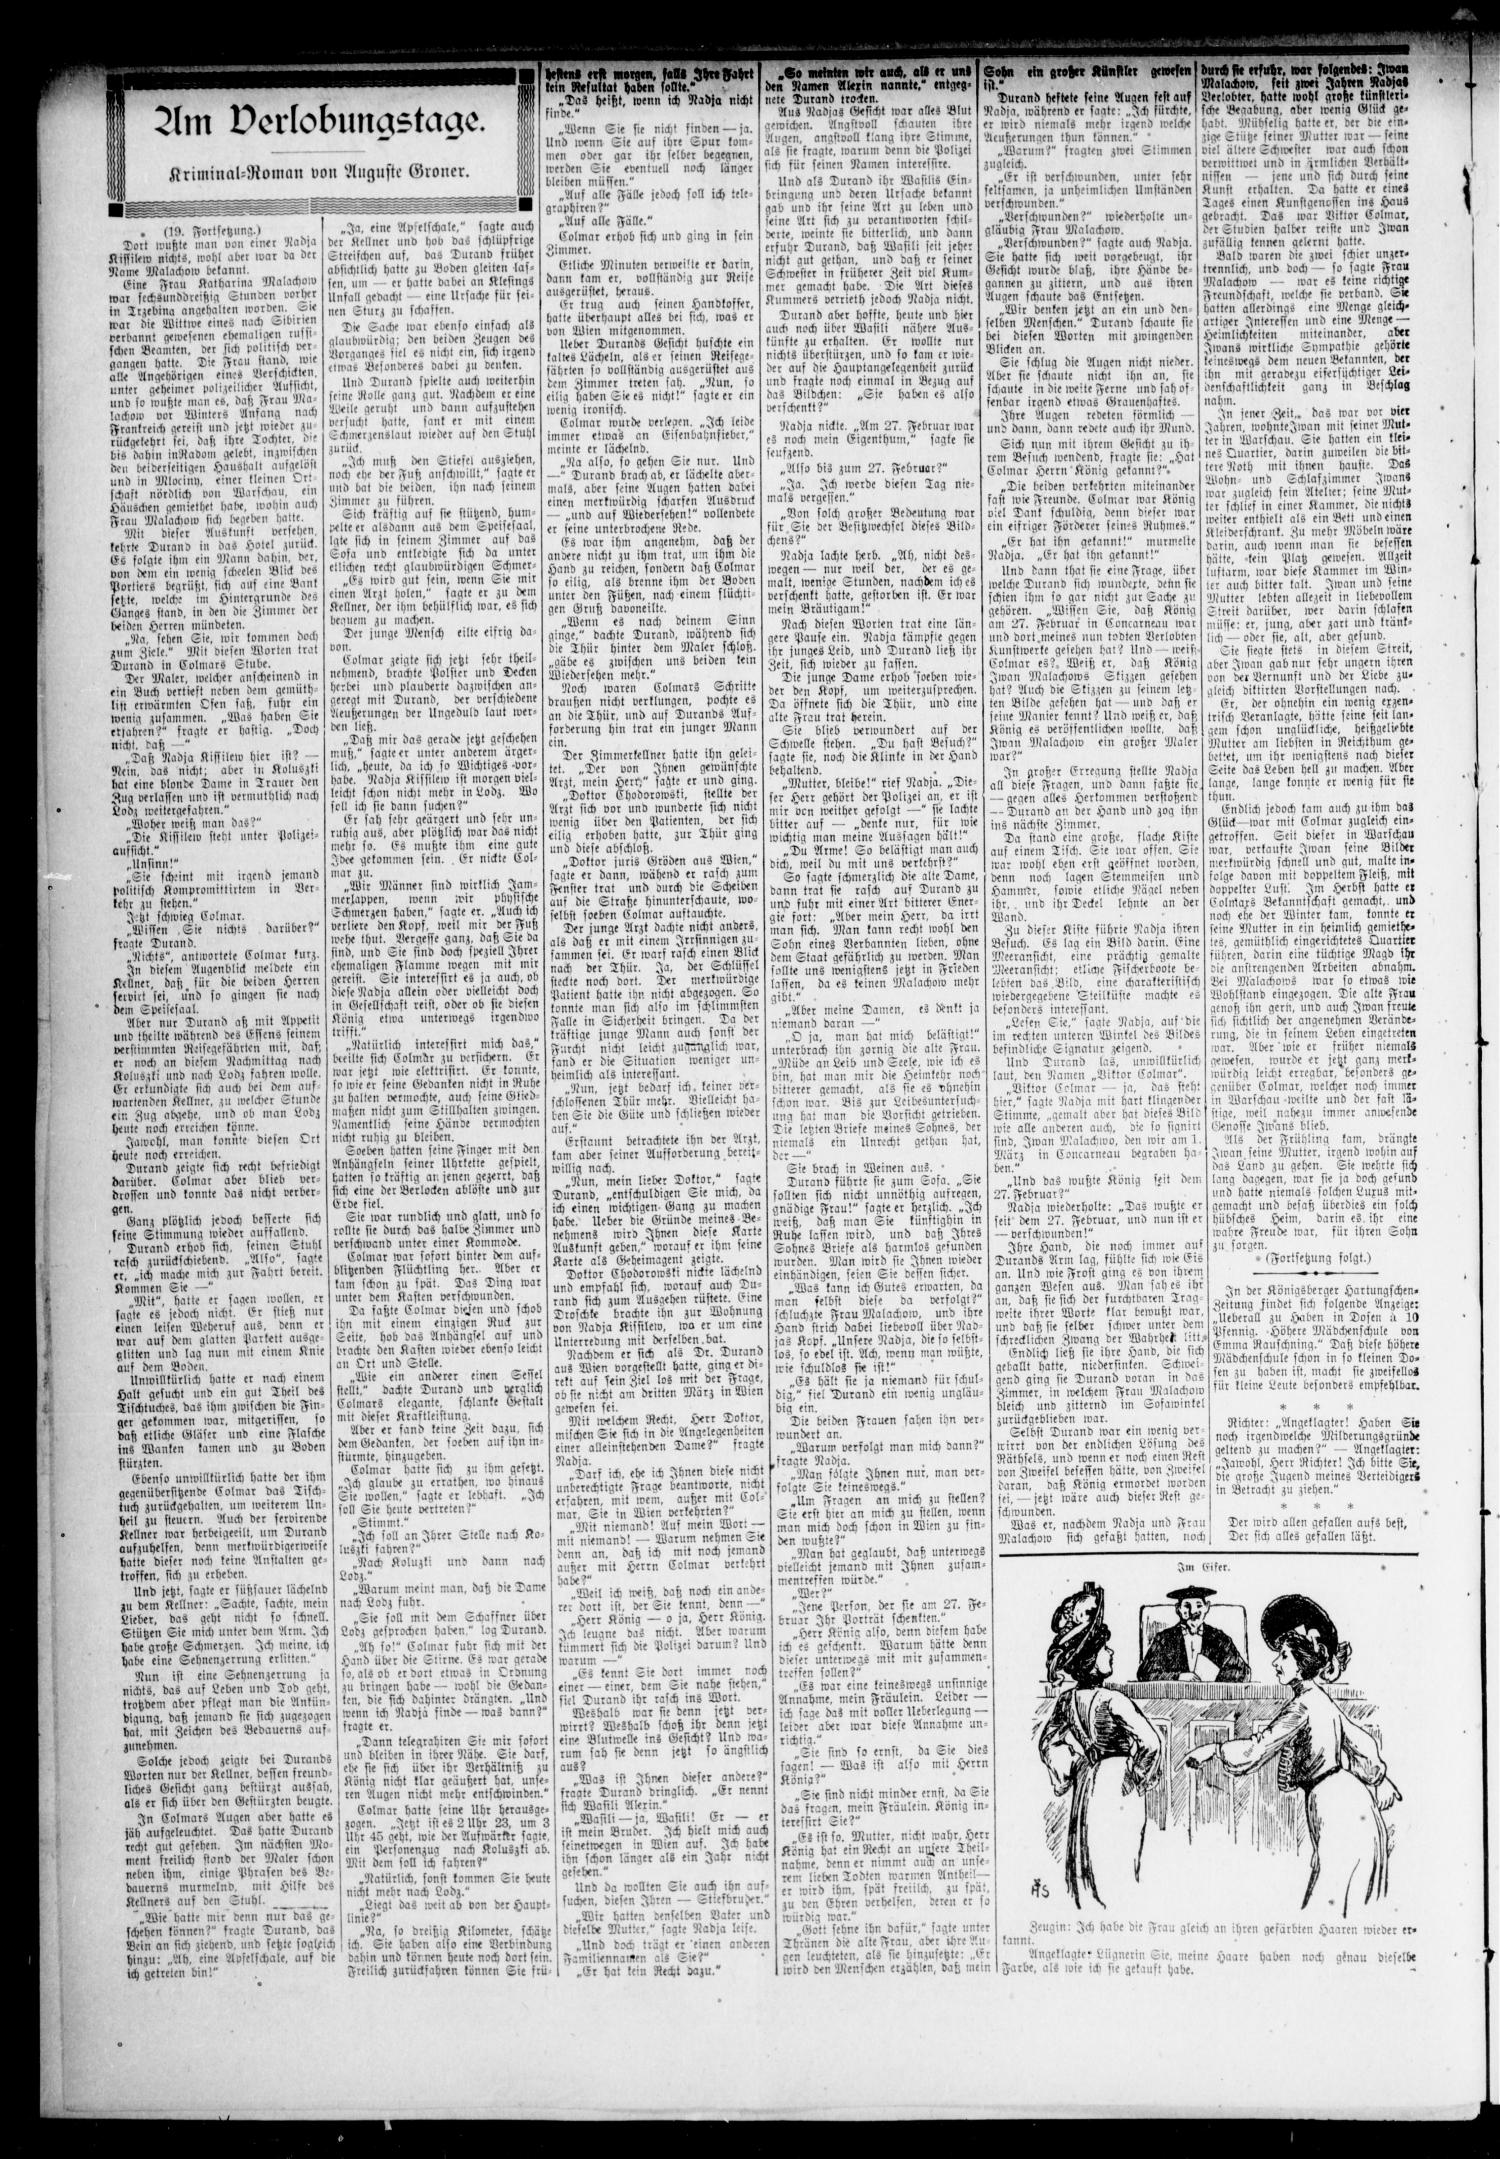 Oklahoma Volksblatt. (Oklahoma City, Okla.), Vol. 14, No. 13, Ed. 1 Friday, June 14, 1907                                                                                                      [Sequence #]: 2 of 8